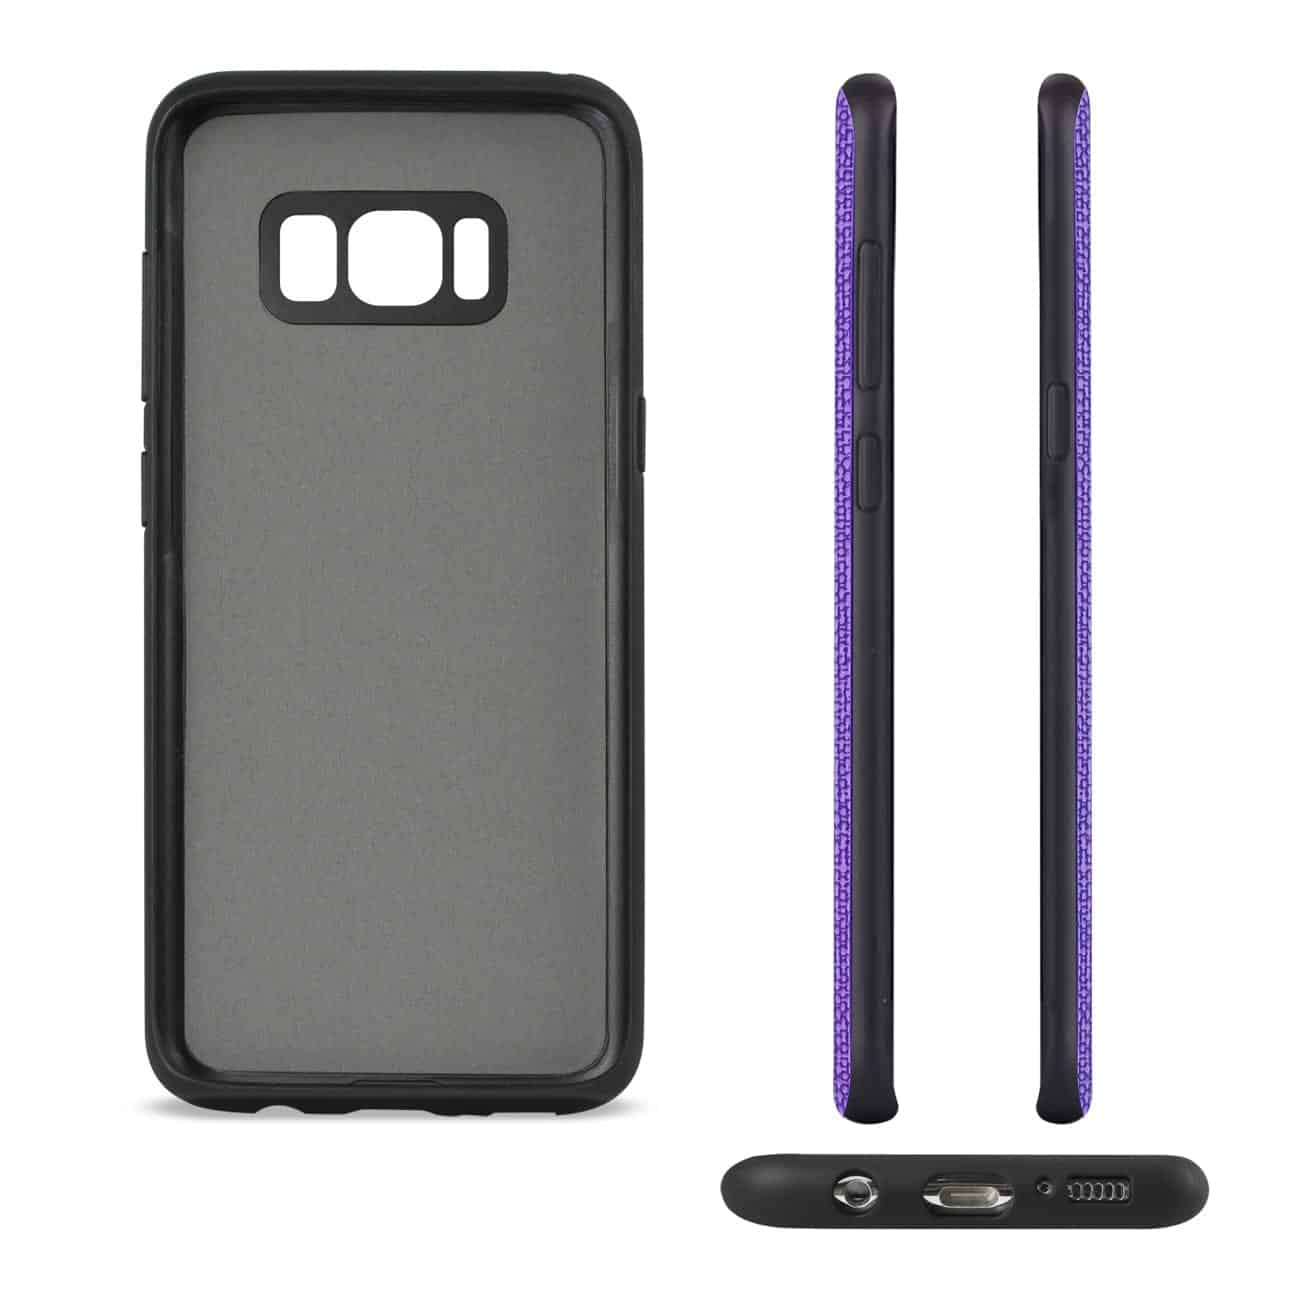 SAMSUNG GALAXY S8 EDGE/ S8 PLUS ANTI-SLIP TEXTURE PROTECTOR COVER WITH CARD SLOT IN PURPLE